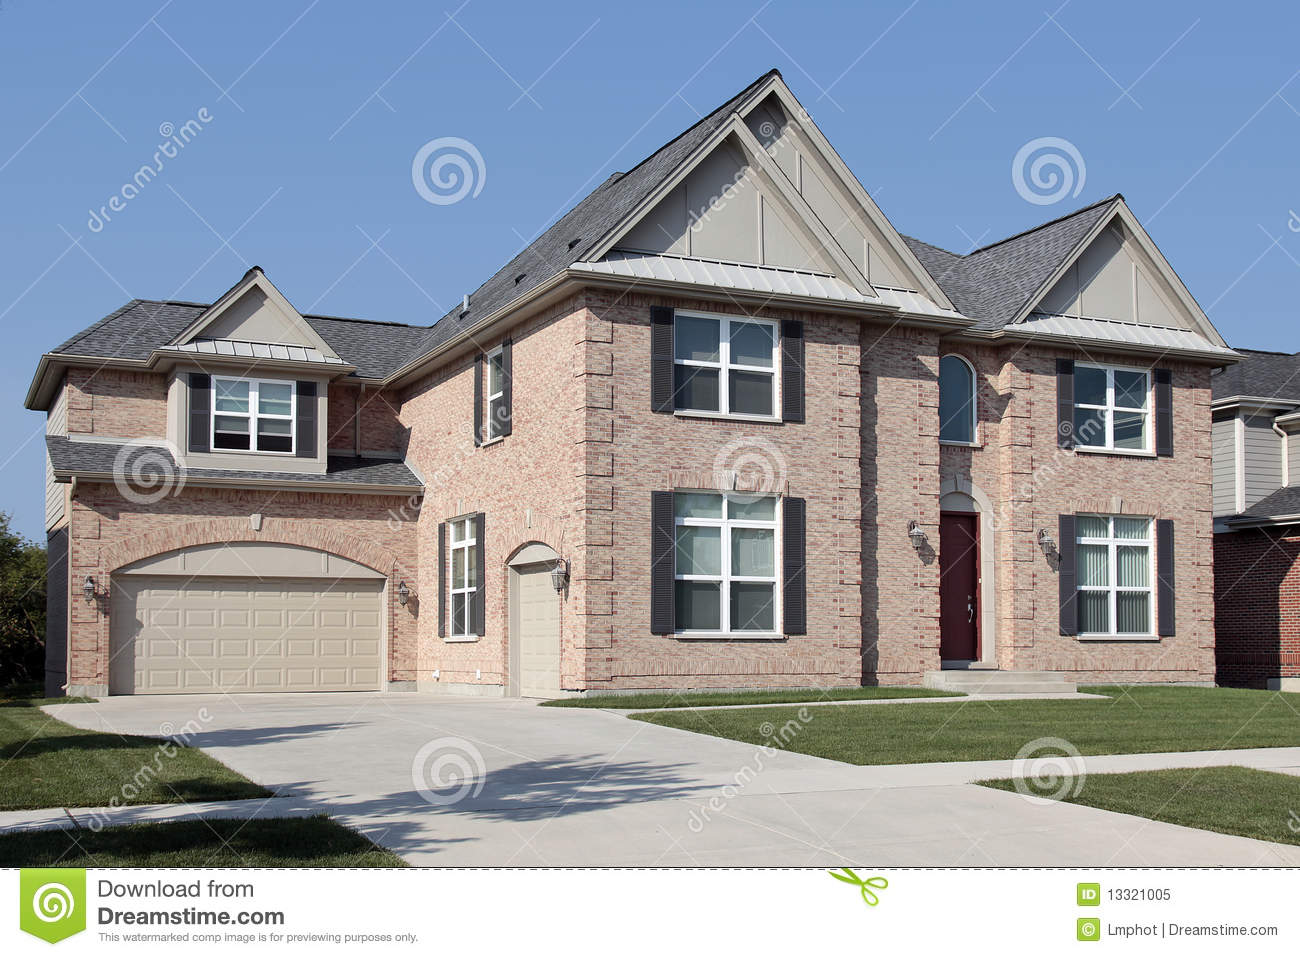 Brick House With Black Shutters Royalty Free Stock Photo